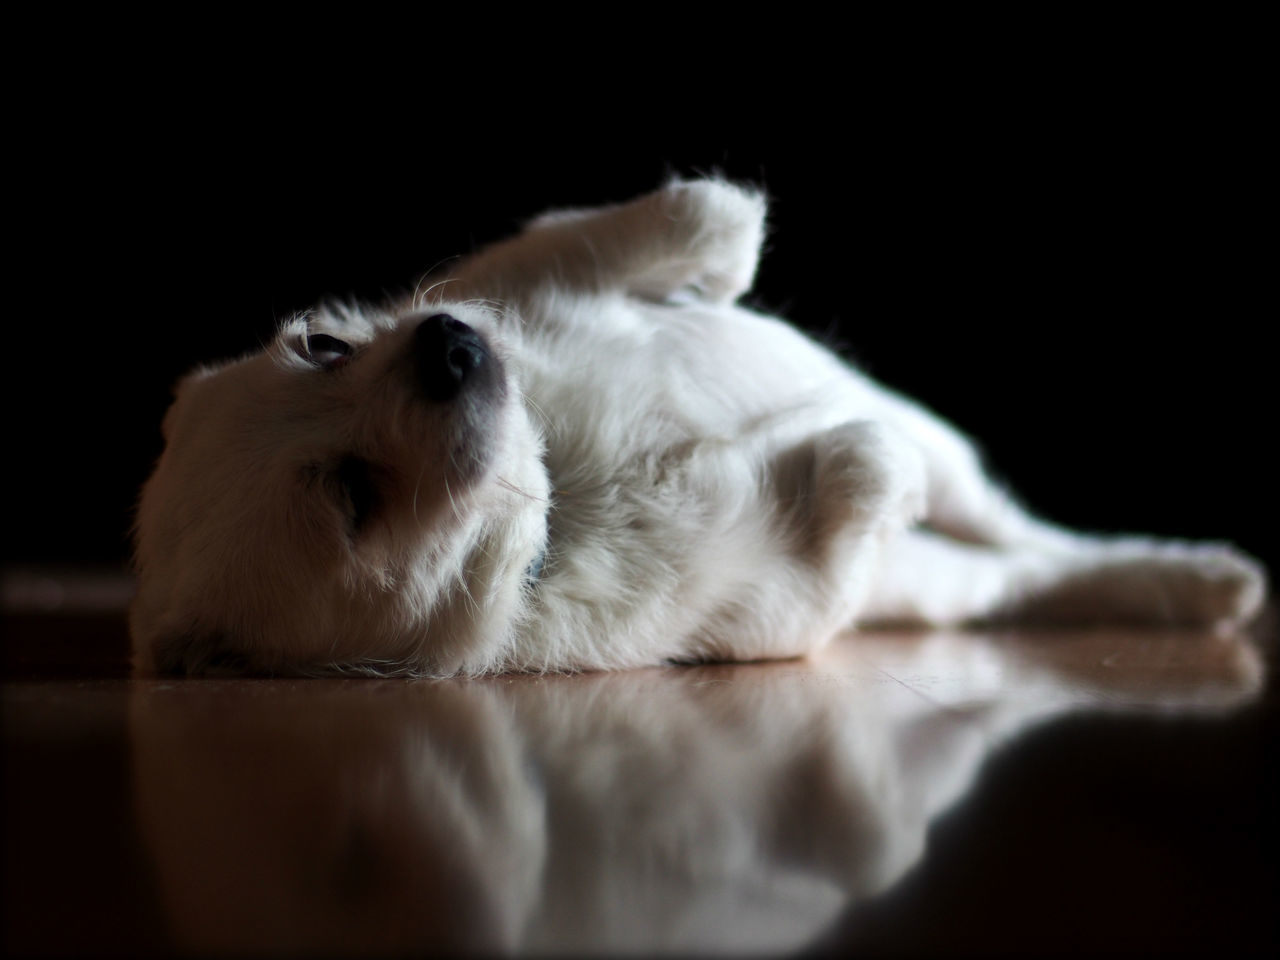 Close-up of dog relaxing on floor at home